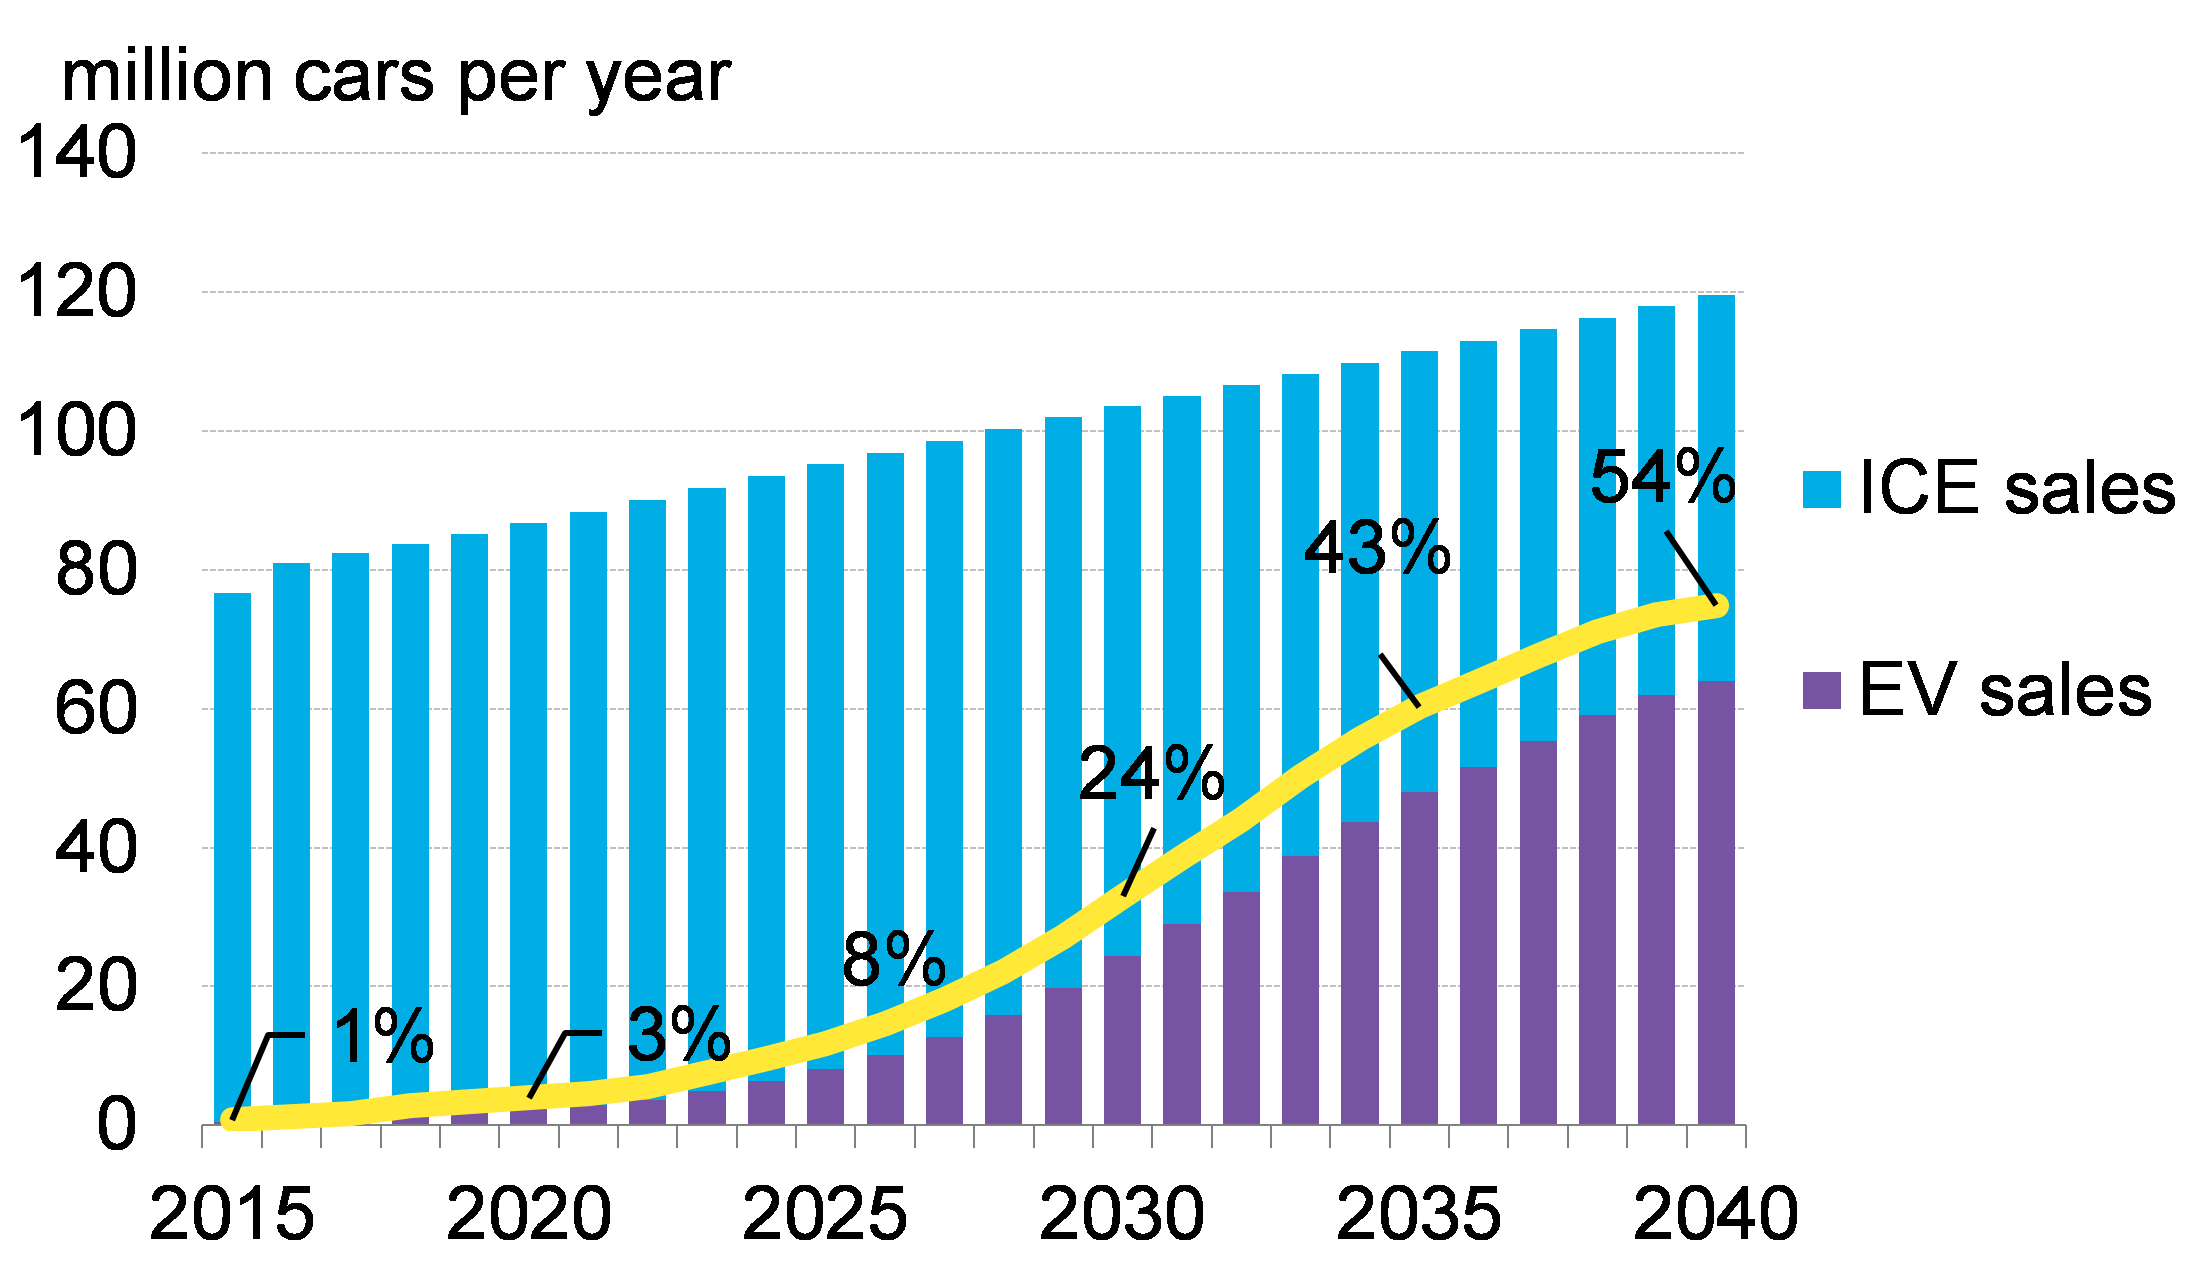 Electric Vehicles to Accelerate to 54% of New Car Sales by 2040 ...